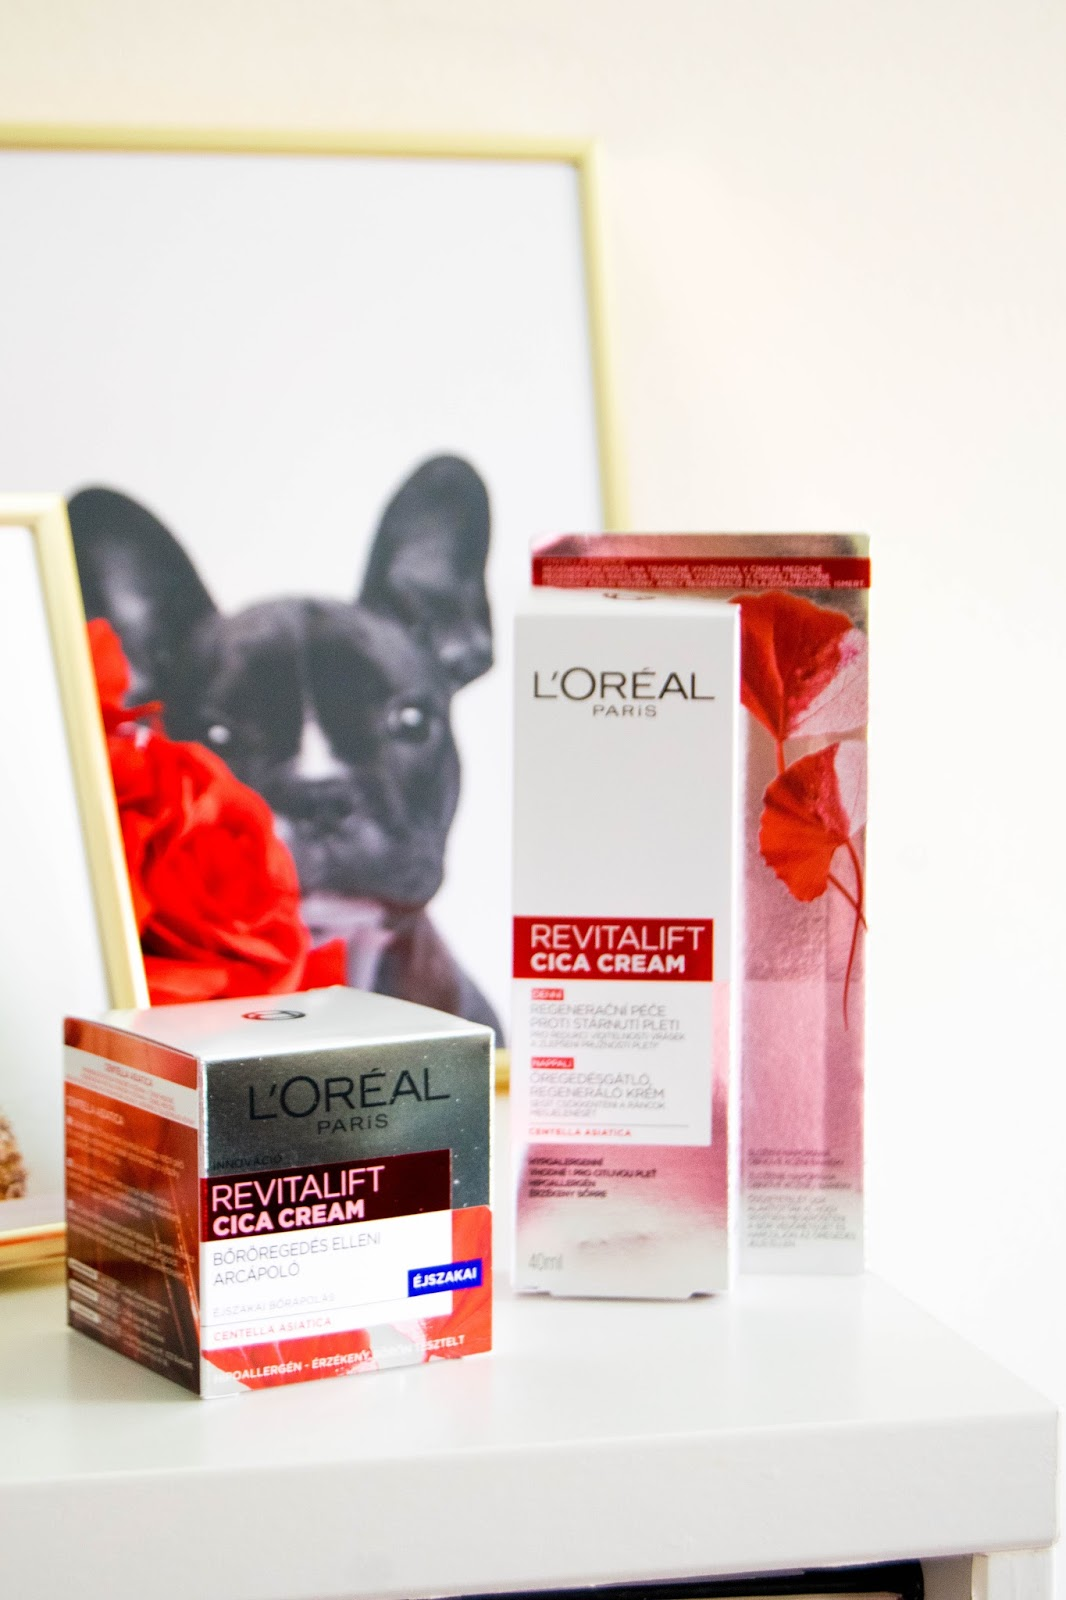 revitalift cica cream l'óreal notino